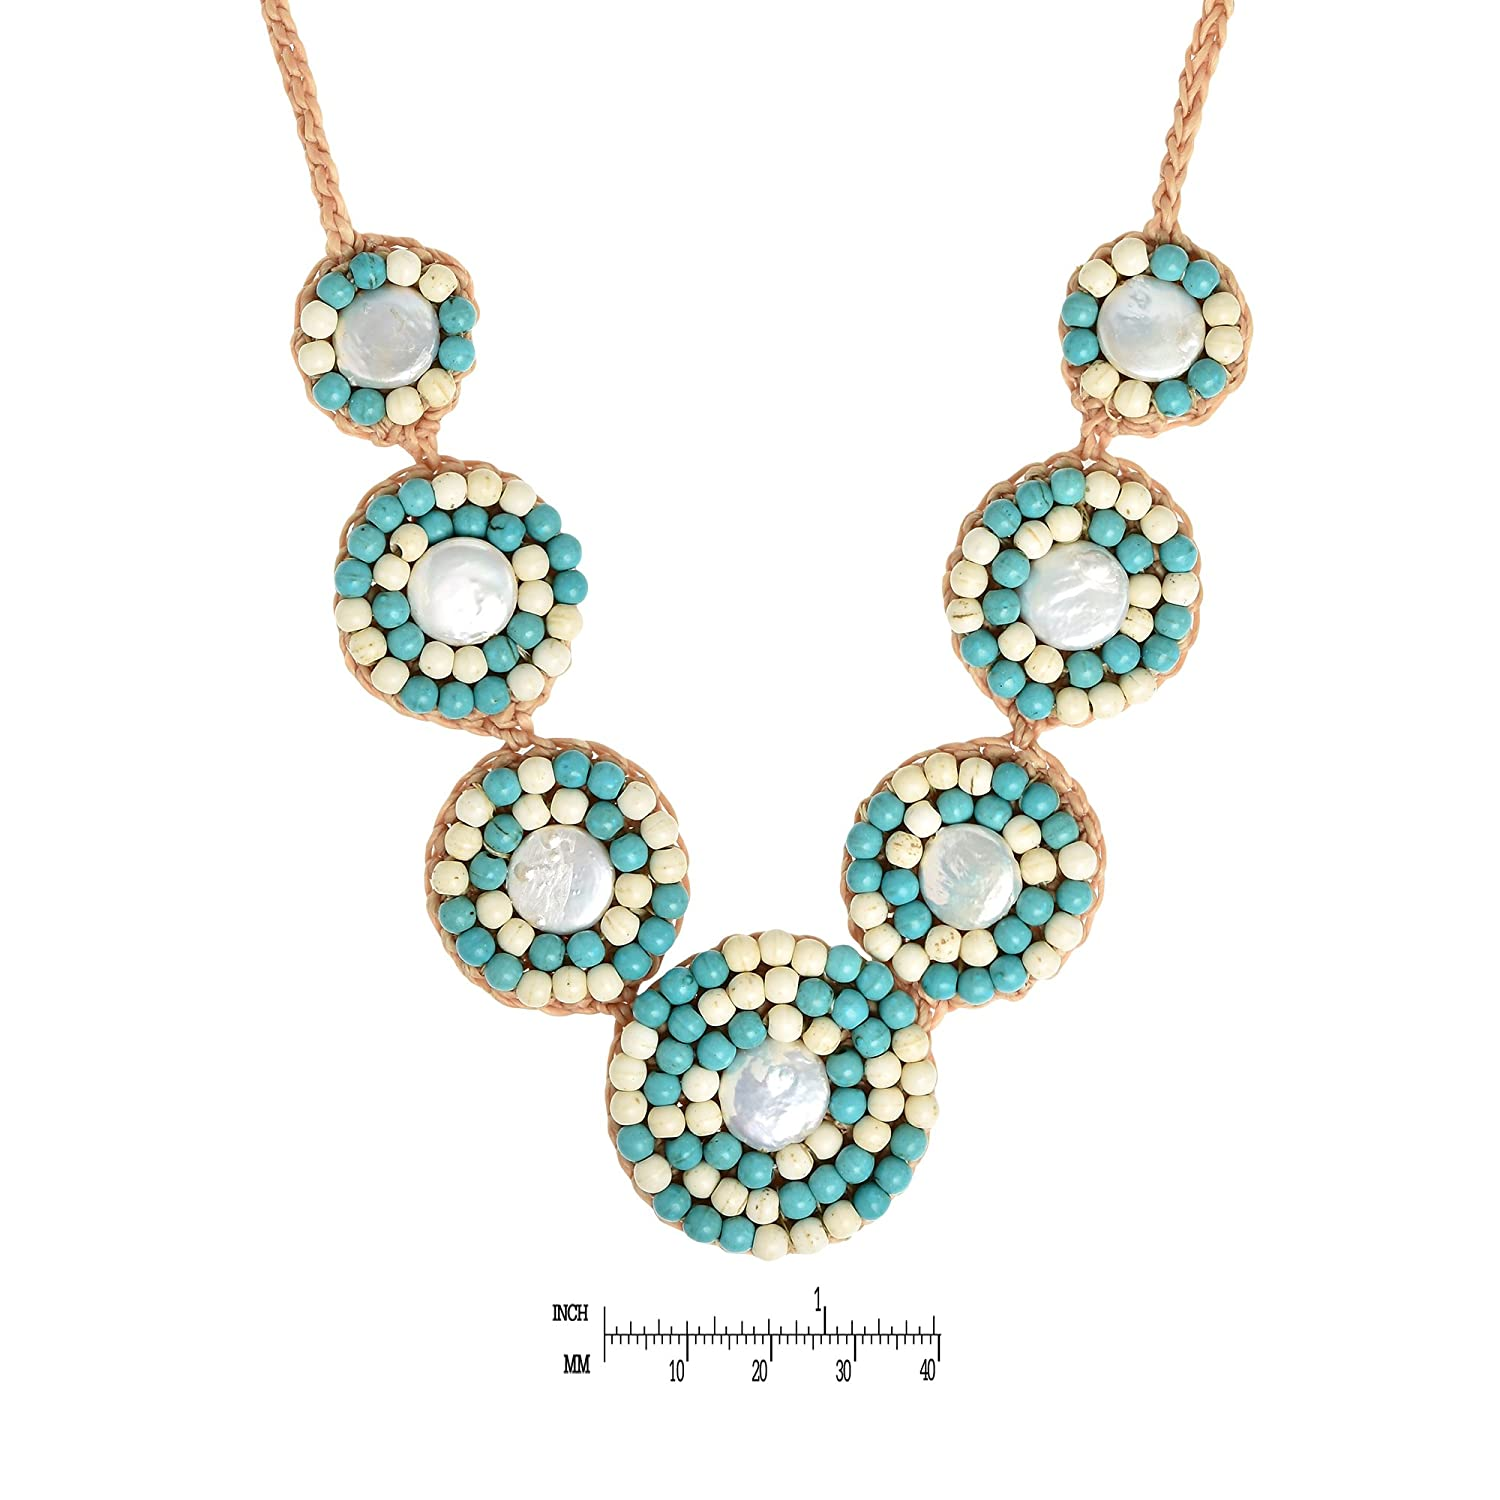 AeraVida Classy Simulated Turquoise Embellished Cultured Freshwater Pearl Handmade Collar Necklace